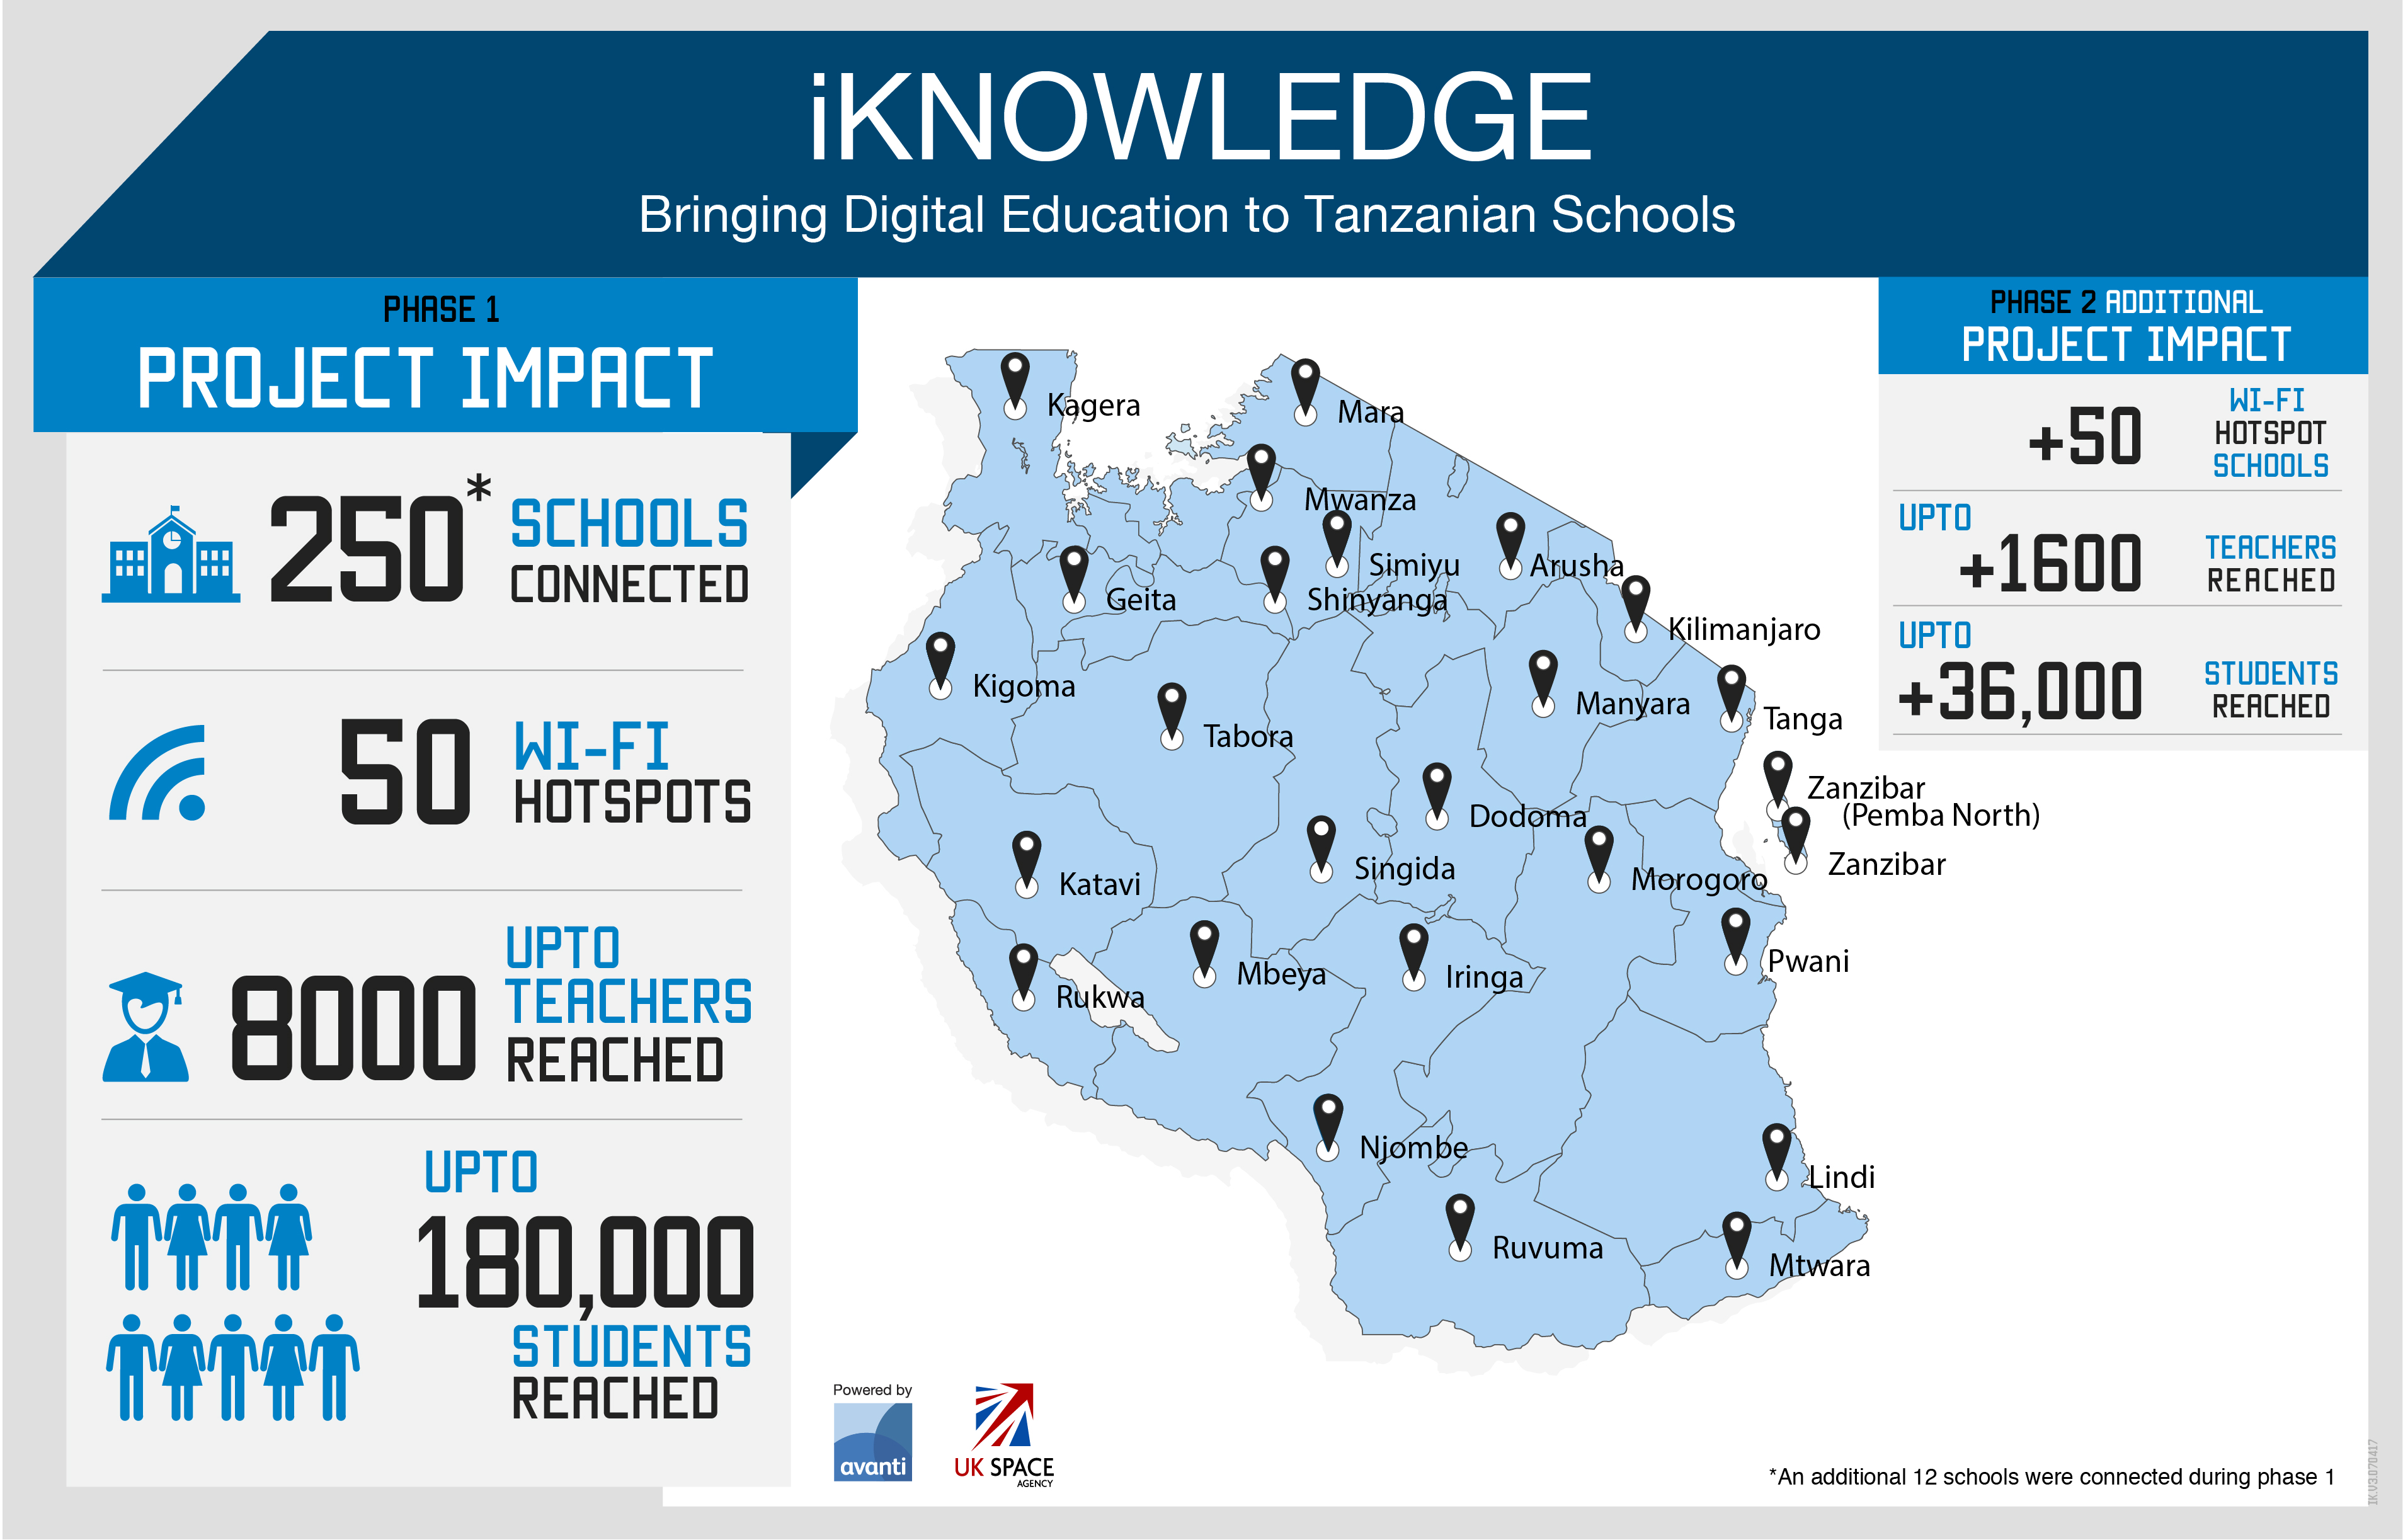 iKnowledge Project Infographic - showcasing the project impact